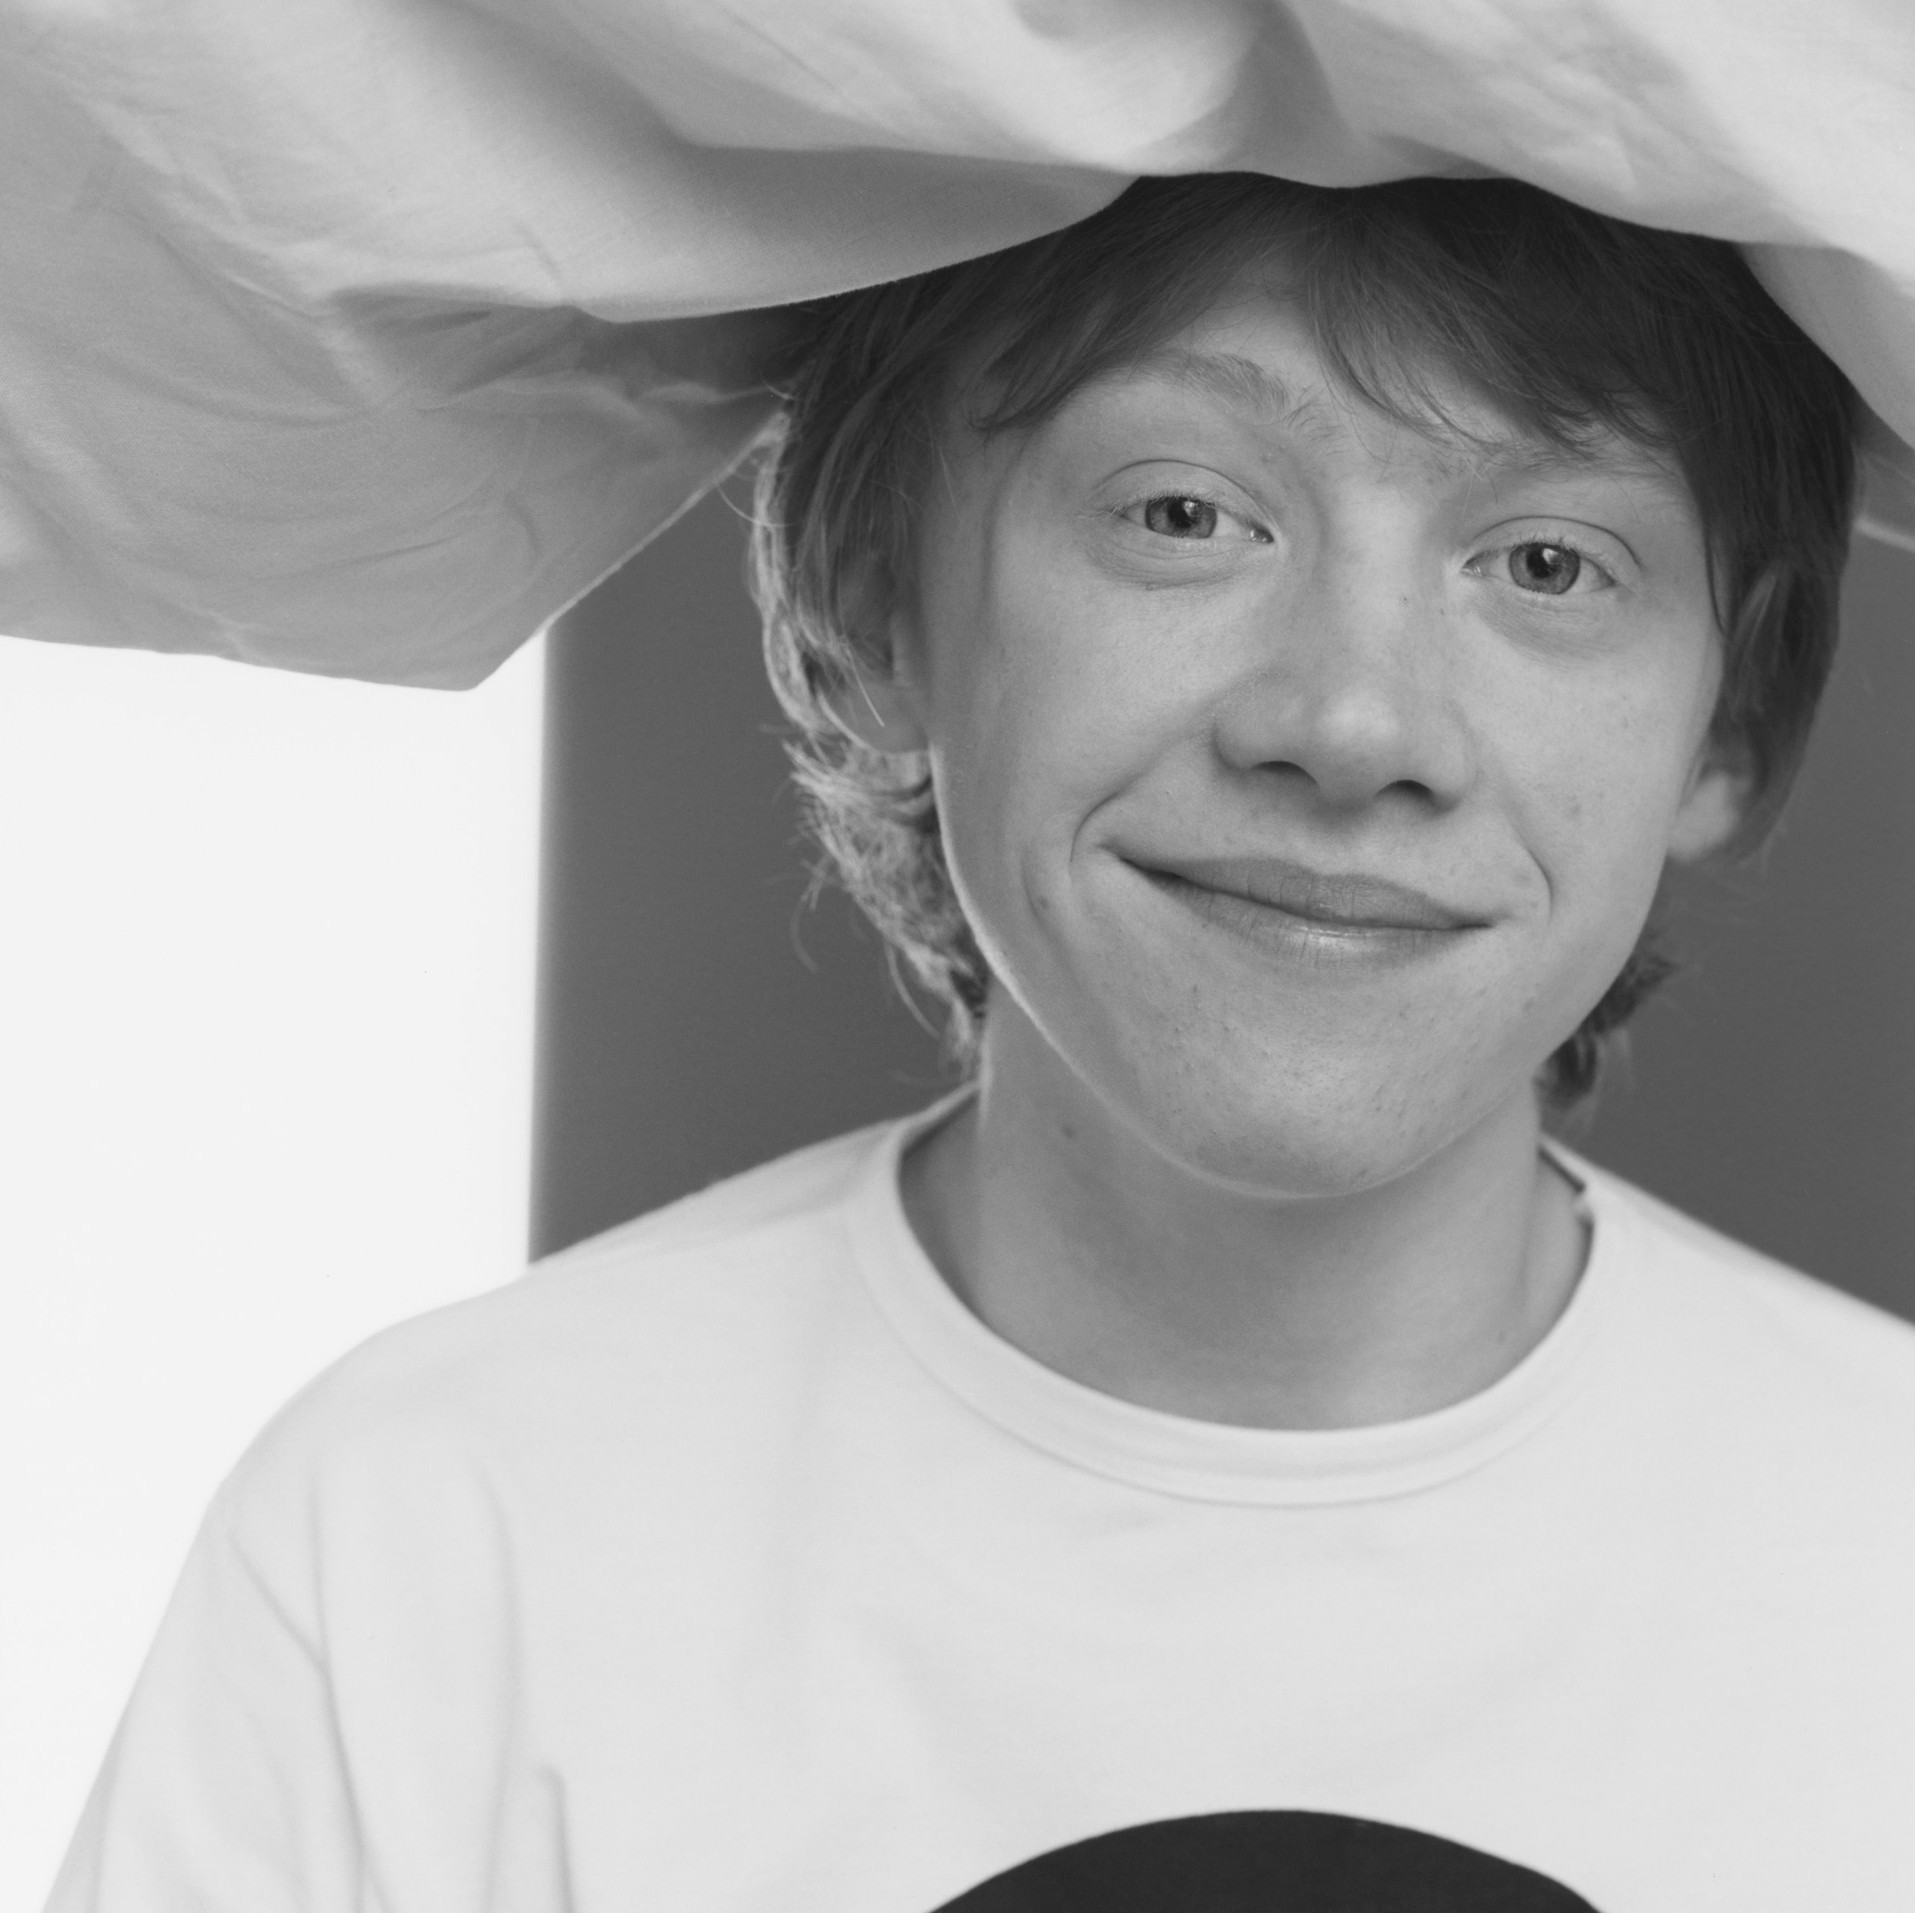 Rupert Grint with Pillow on Head